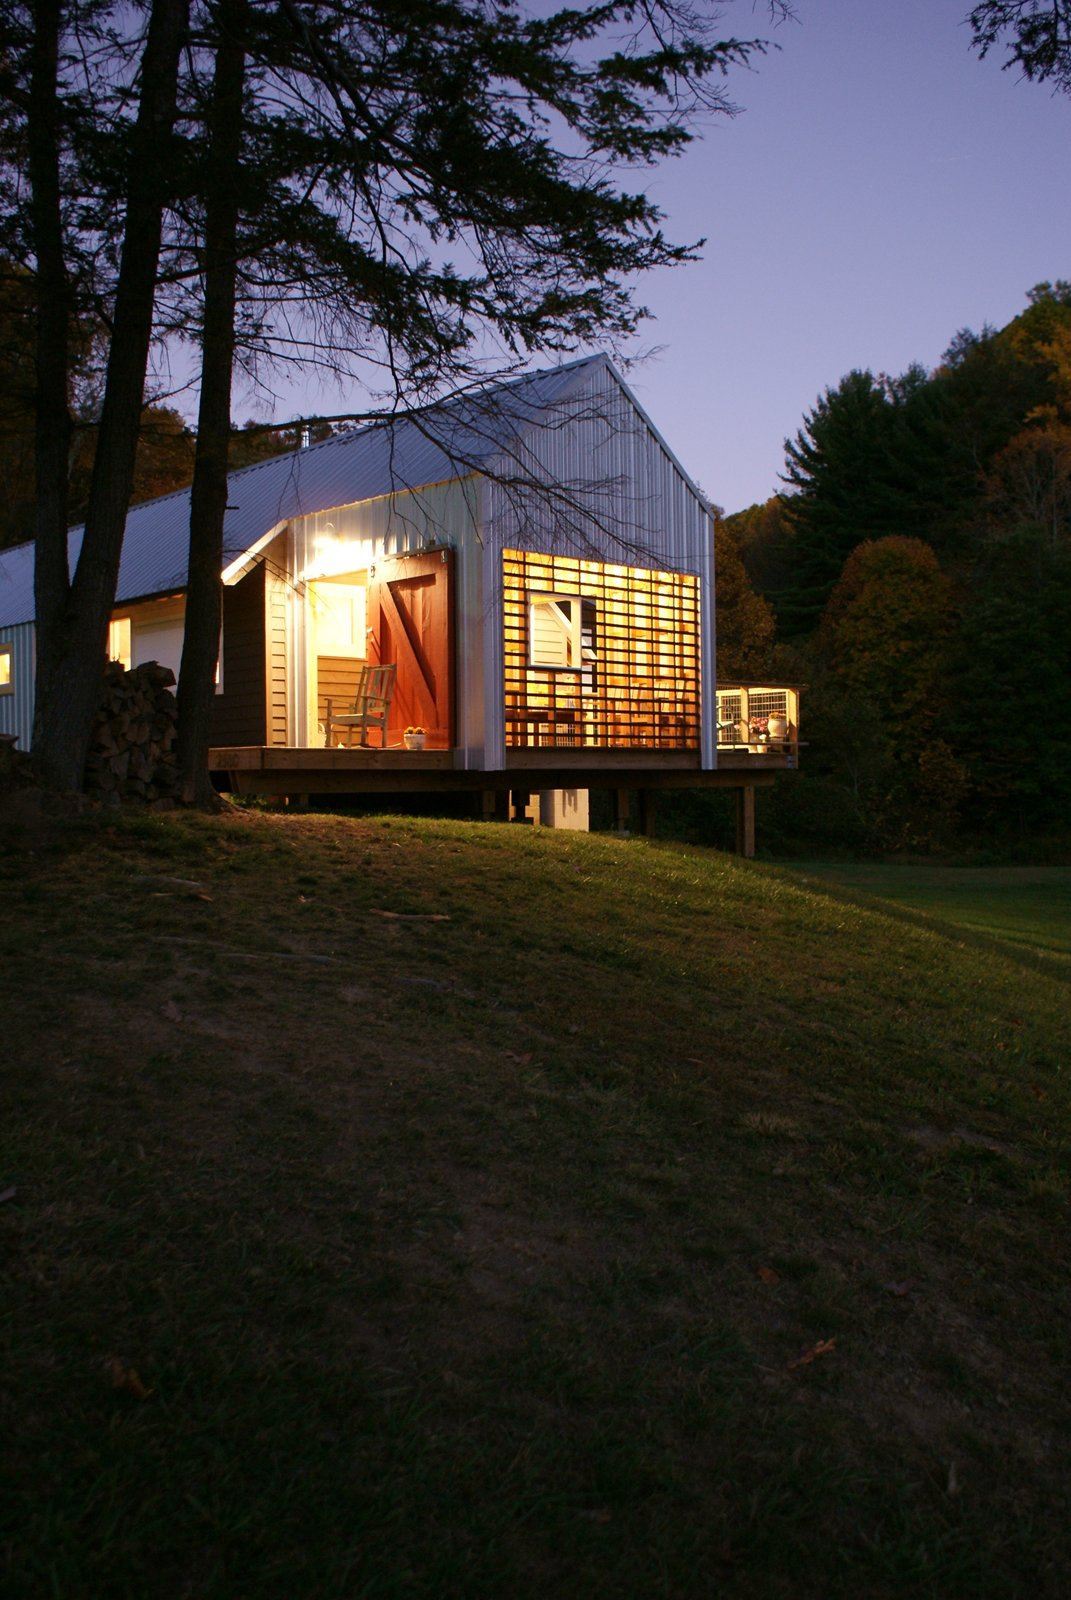 The new home's porches glow like lanterns at night.  Cabins & Hideouts